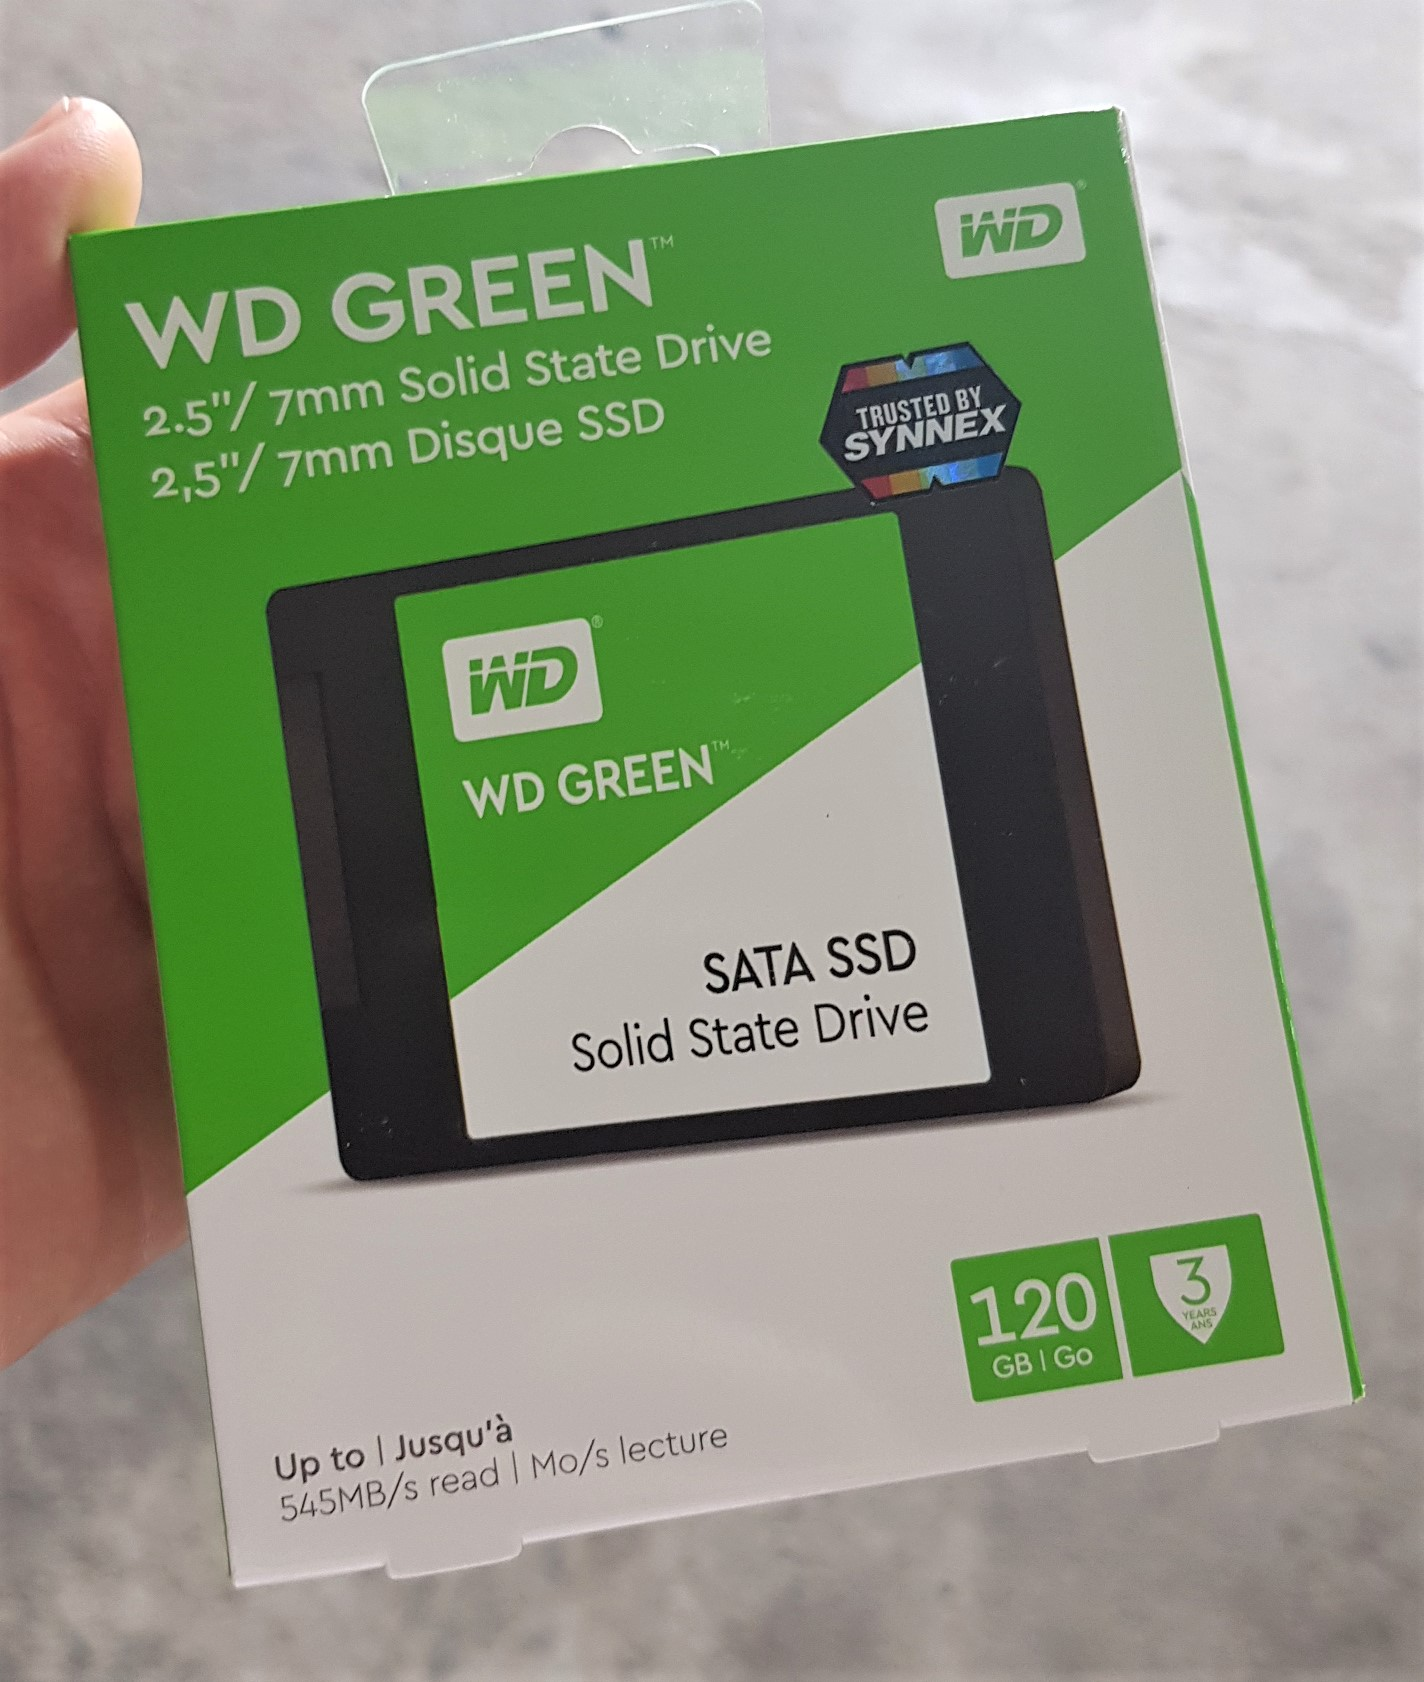 120 GB SSD (เอสเอสดี) WD GREEN (WDSSD120GB) SATA